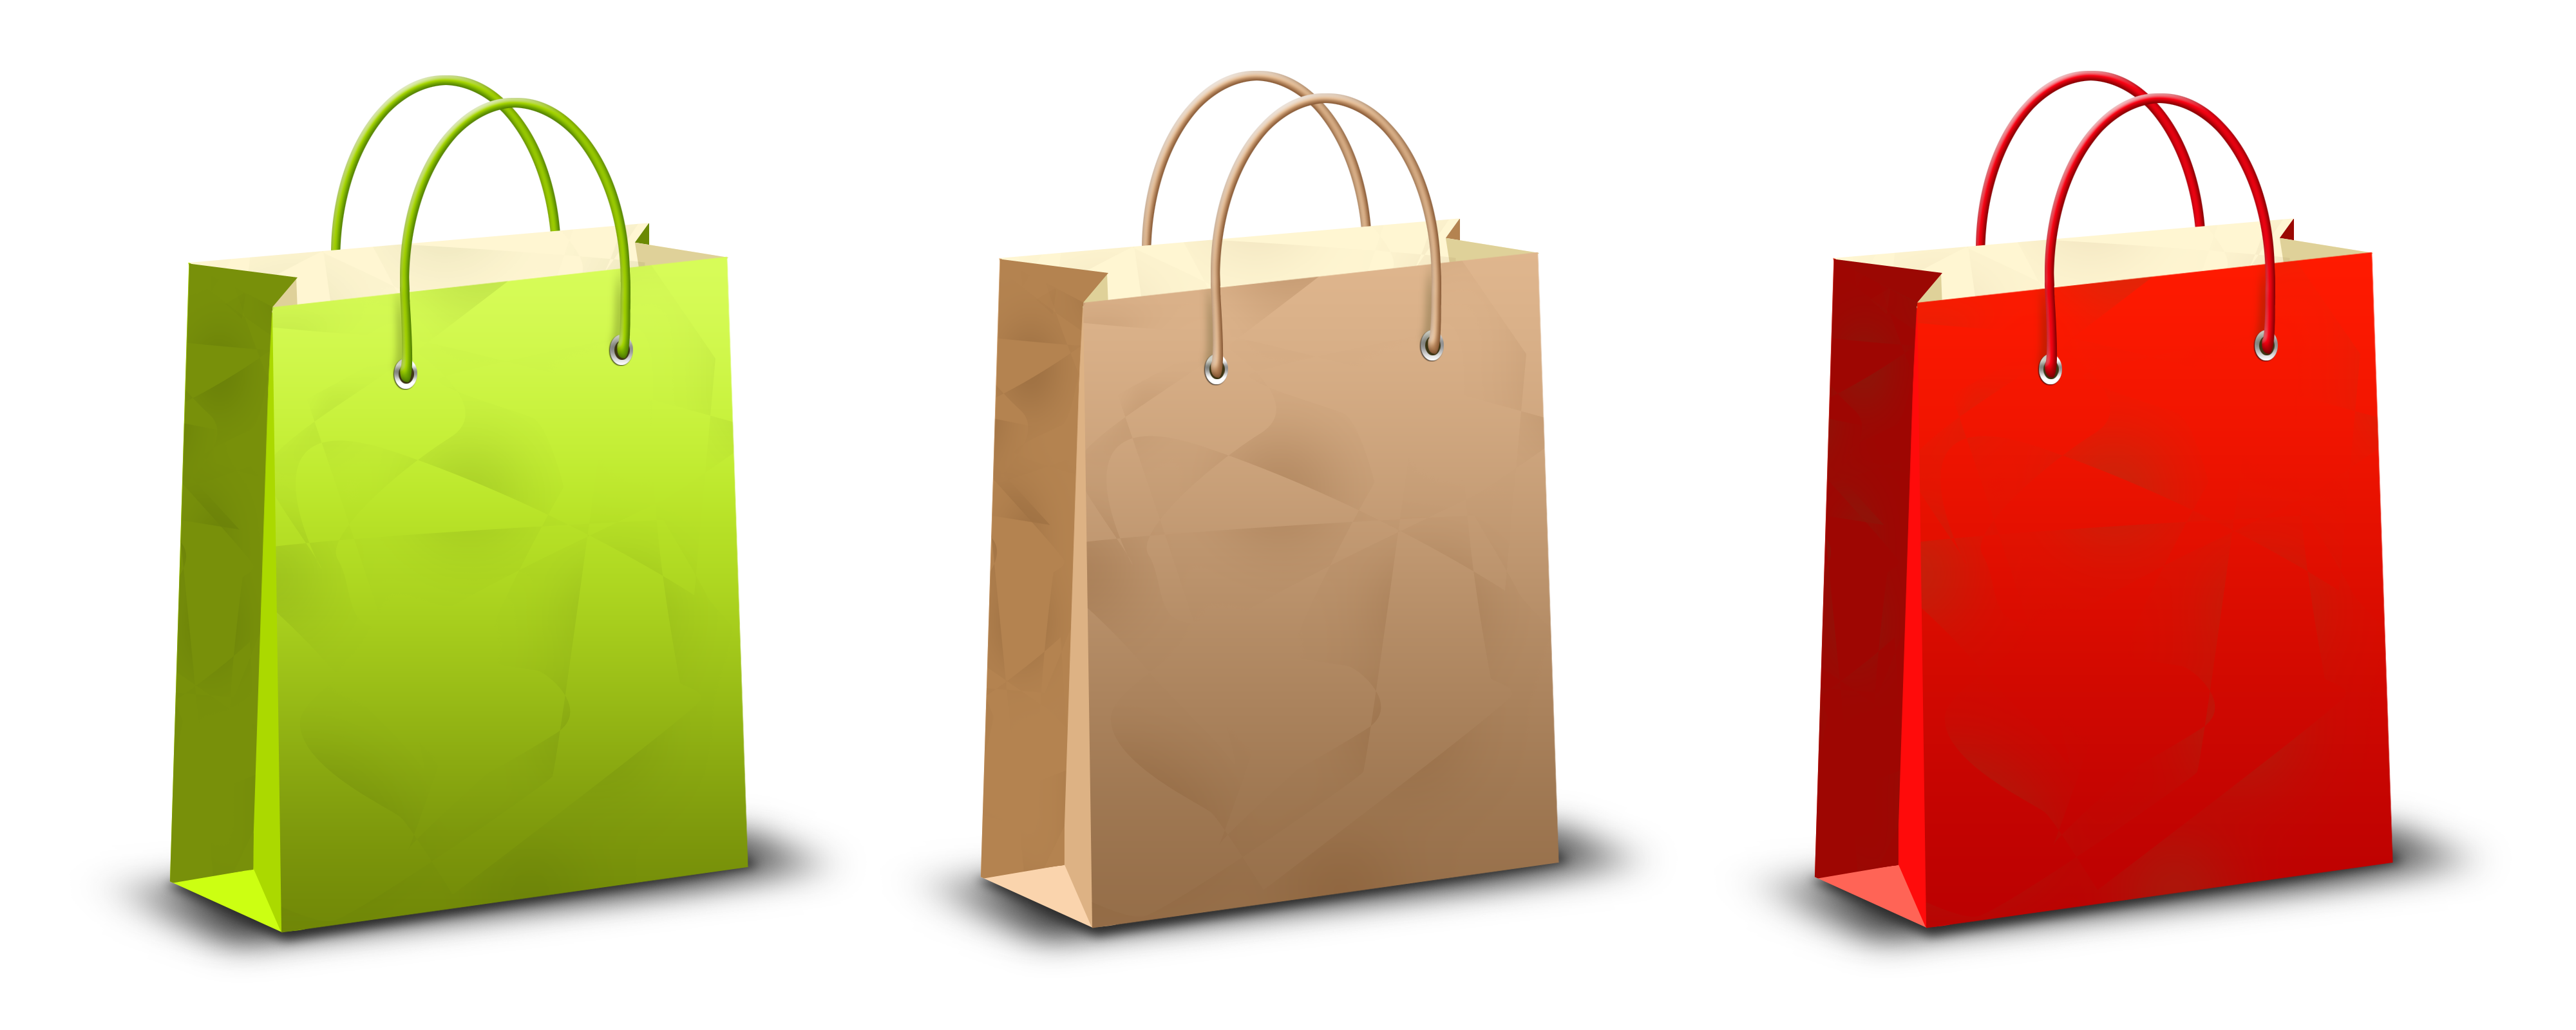 Bags png #33951 - Free Icons and PNG Backgrounds